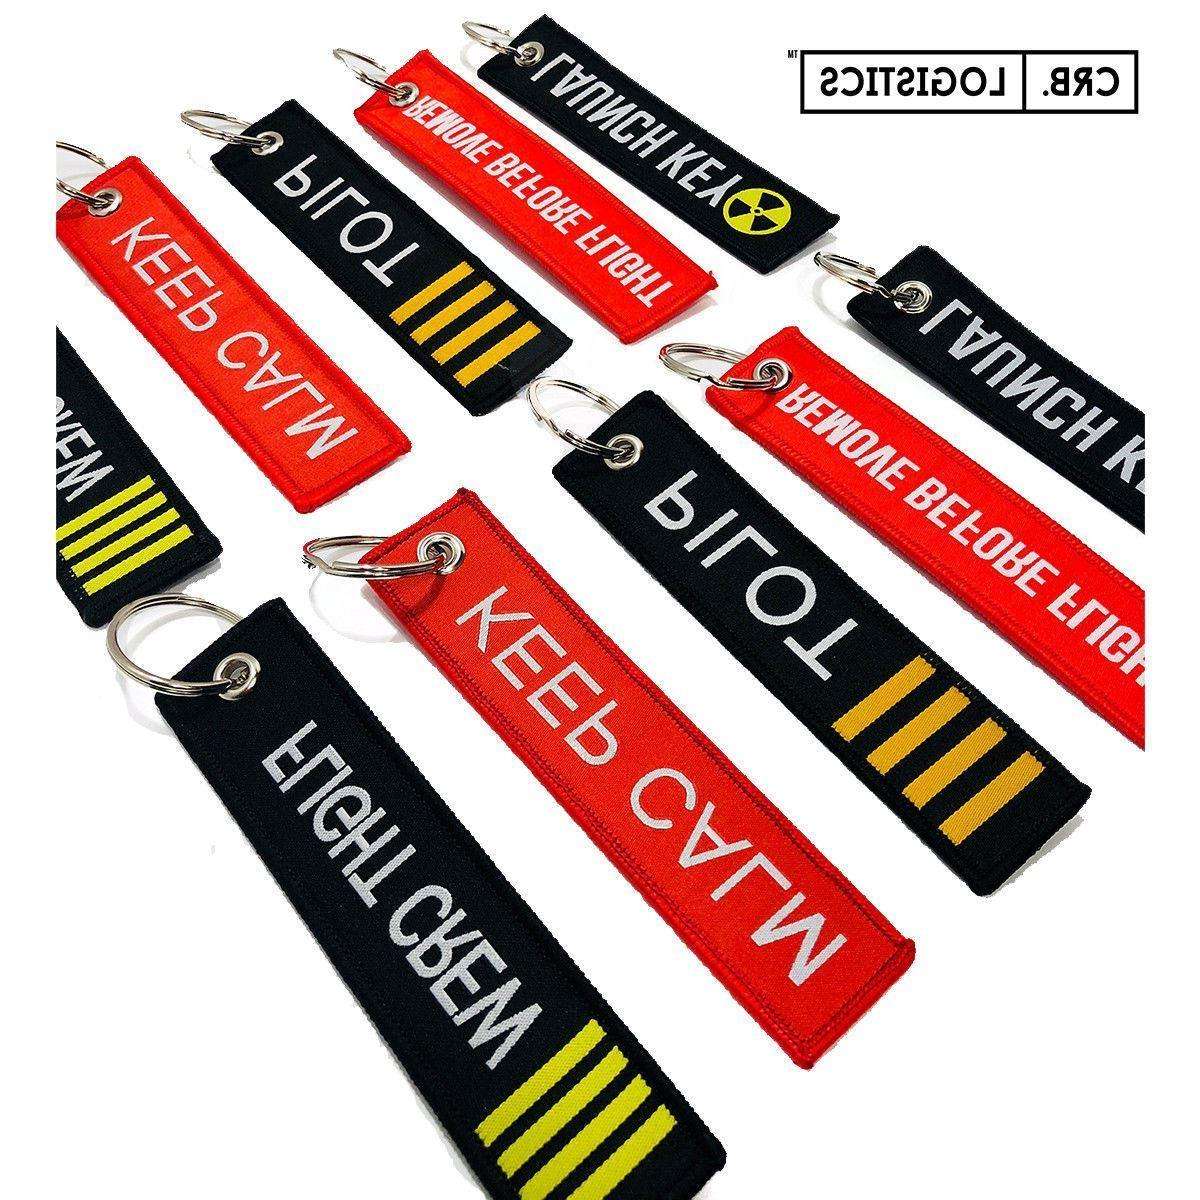 remove before flight launch key chain luggage